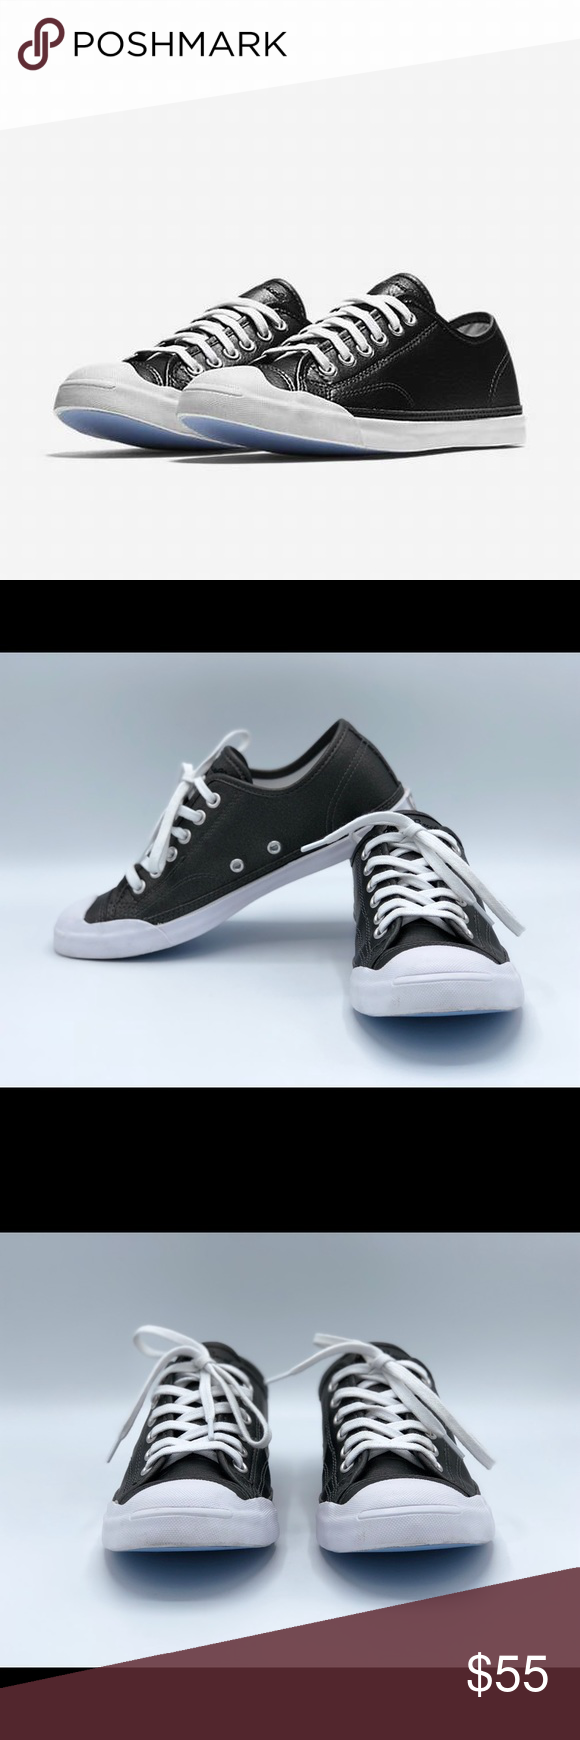 712526157d50 Converse Jack Purcell Metallic Leather These are almost new Converse Jack  Purcell LP Metallic Leather Low